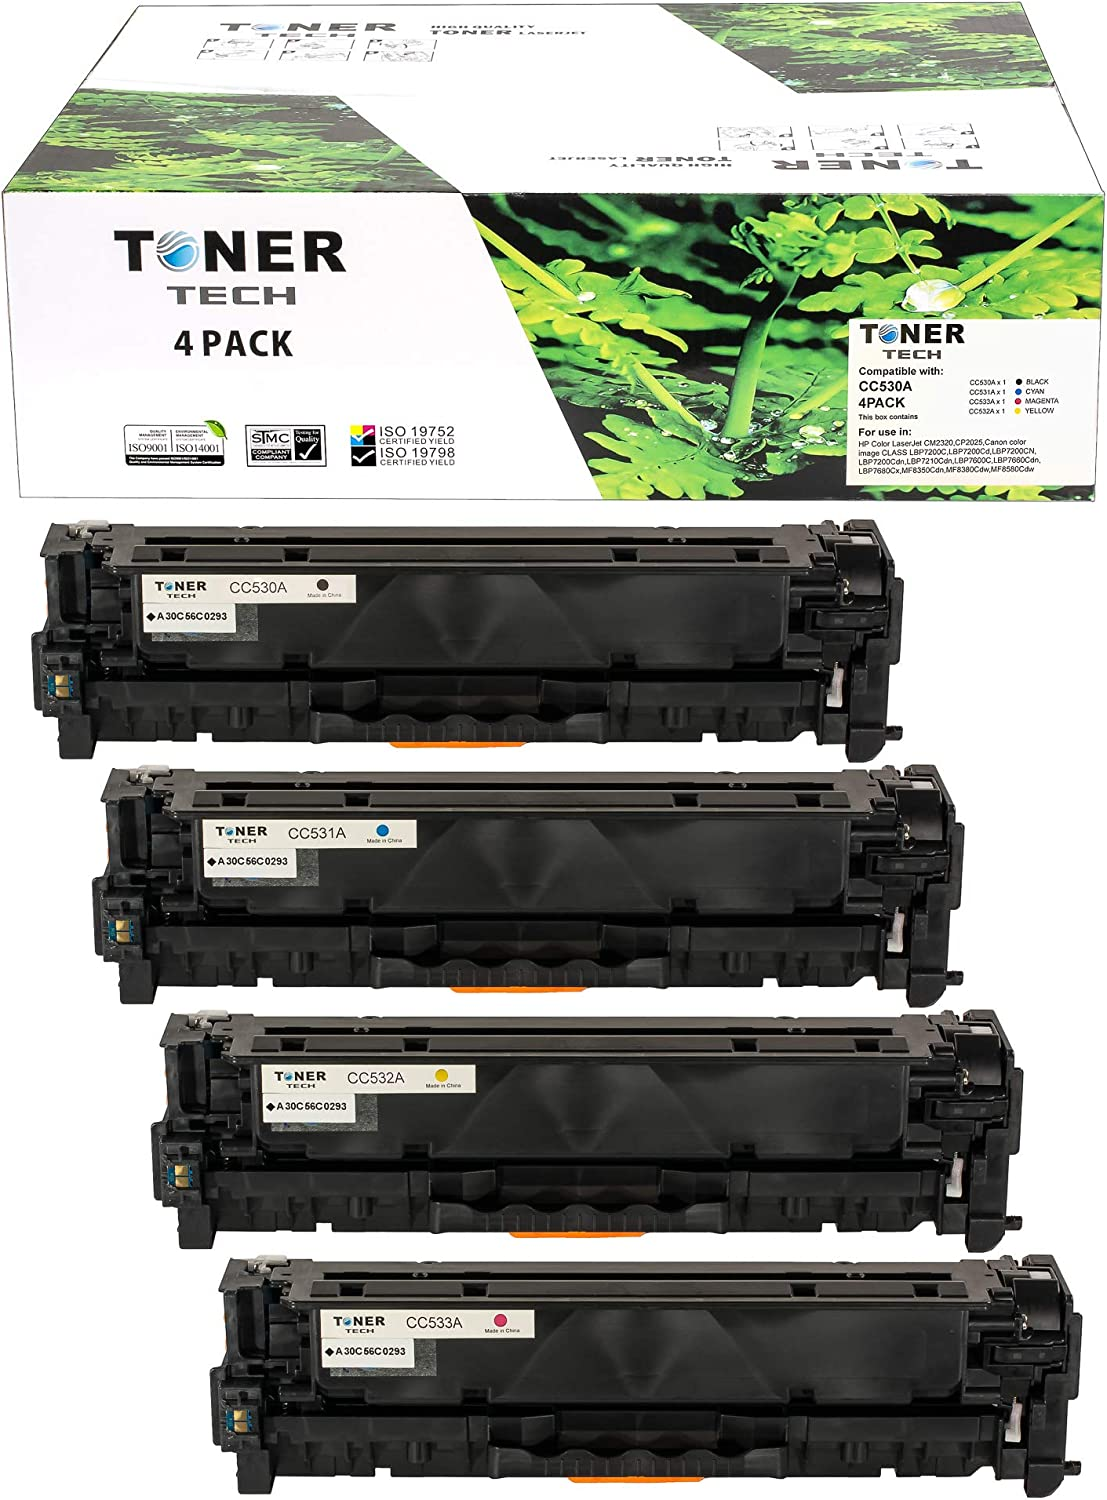 Toner Tech Remanufactured Set Replacement for CC530A CC531A CC532A CC533A HP 304A (CE410A CF380X-D Canon 118) X for Laserjet Printers CM2320 CP2026 CM2320NF CP2025 CP2025X CP2020 CM2320NF